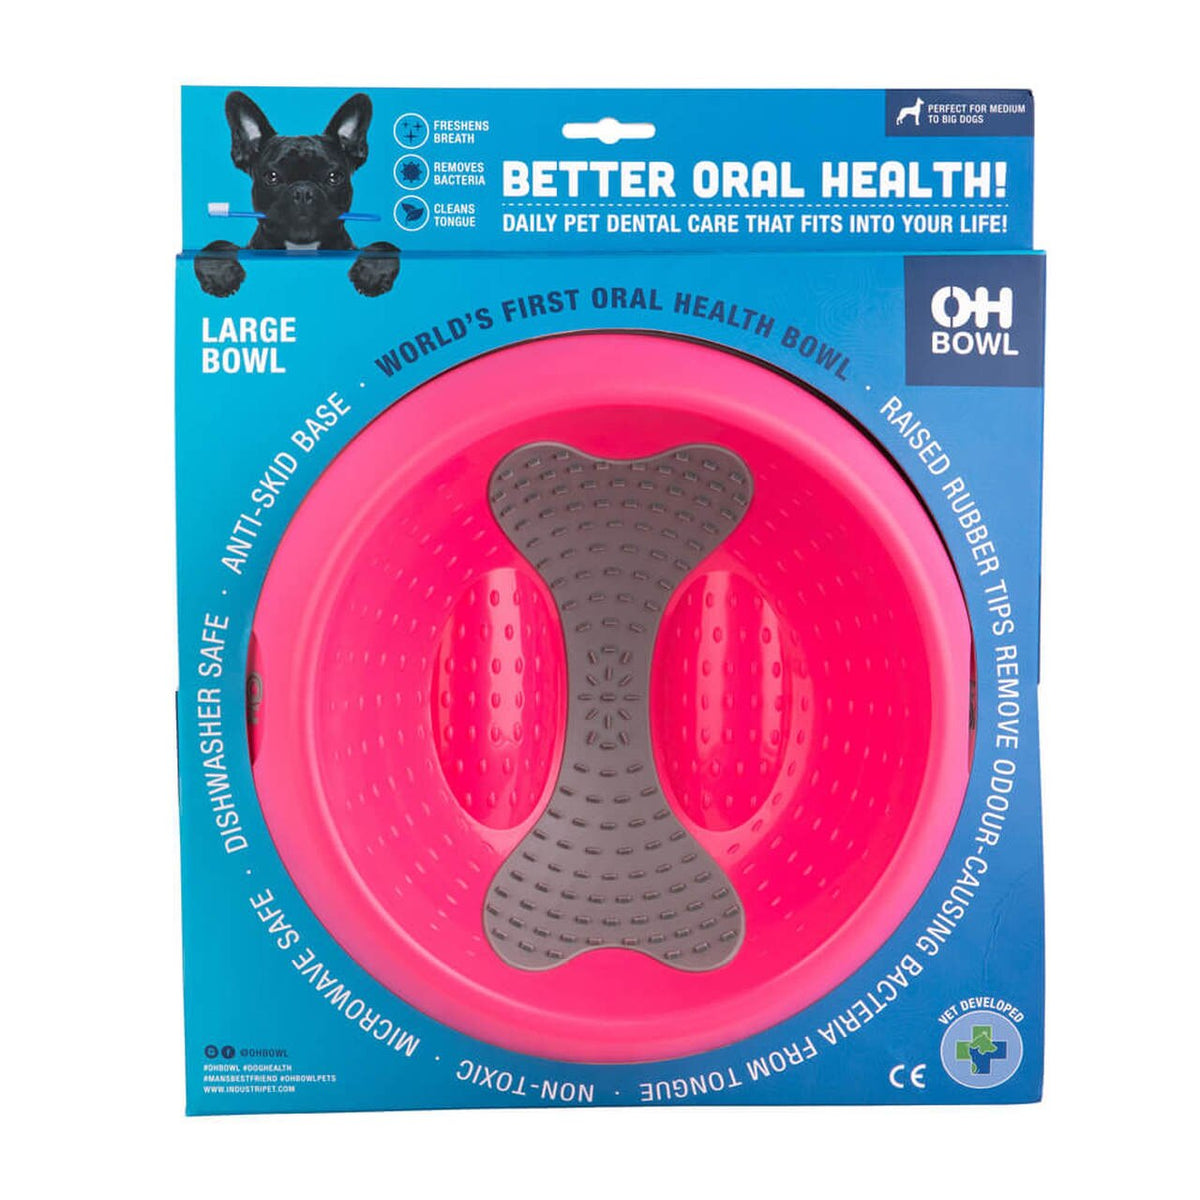 OH BOWL Oral Hygiene Dog Bowl Magenta Large